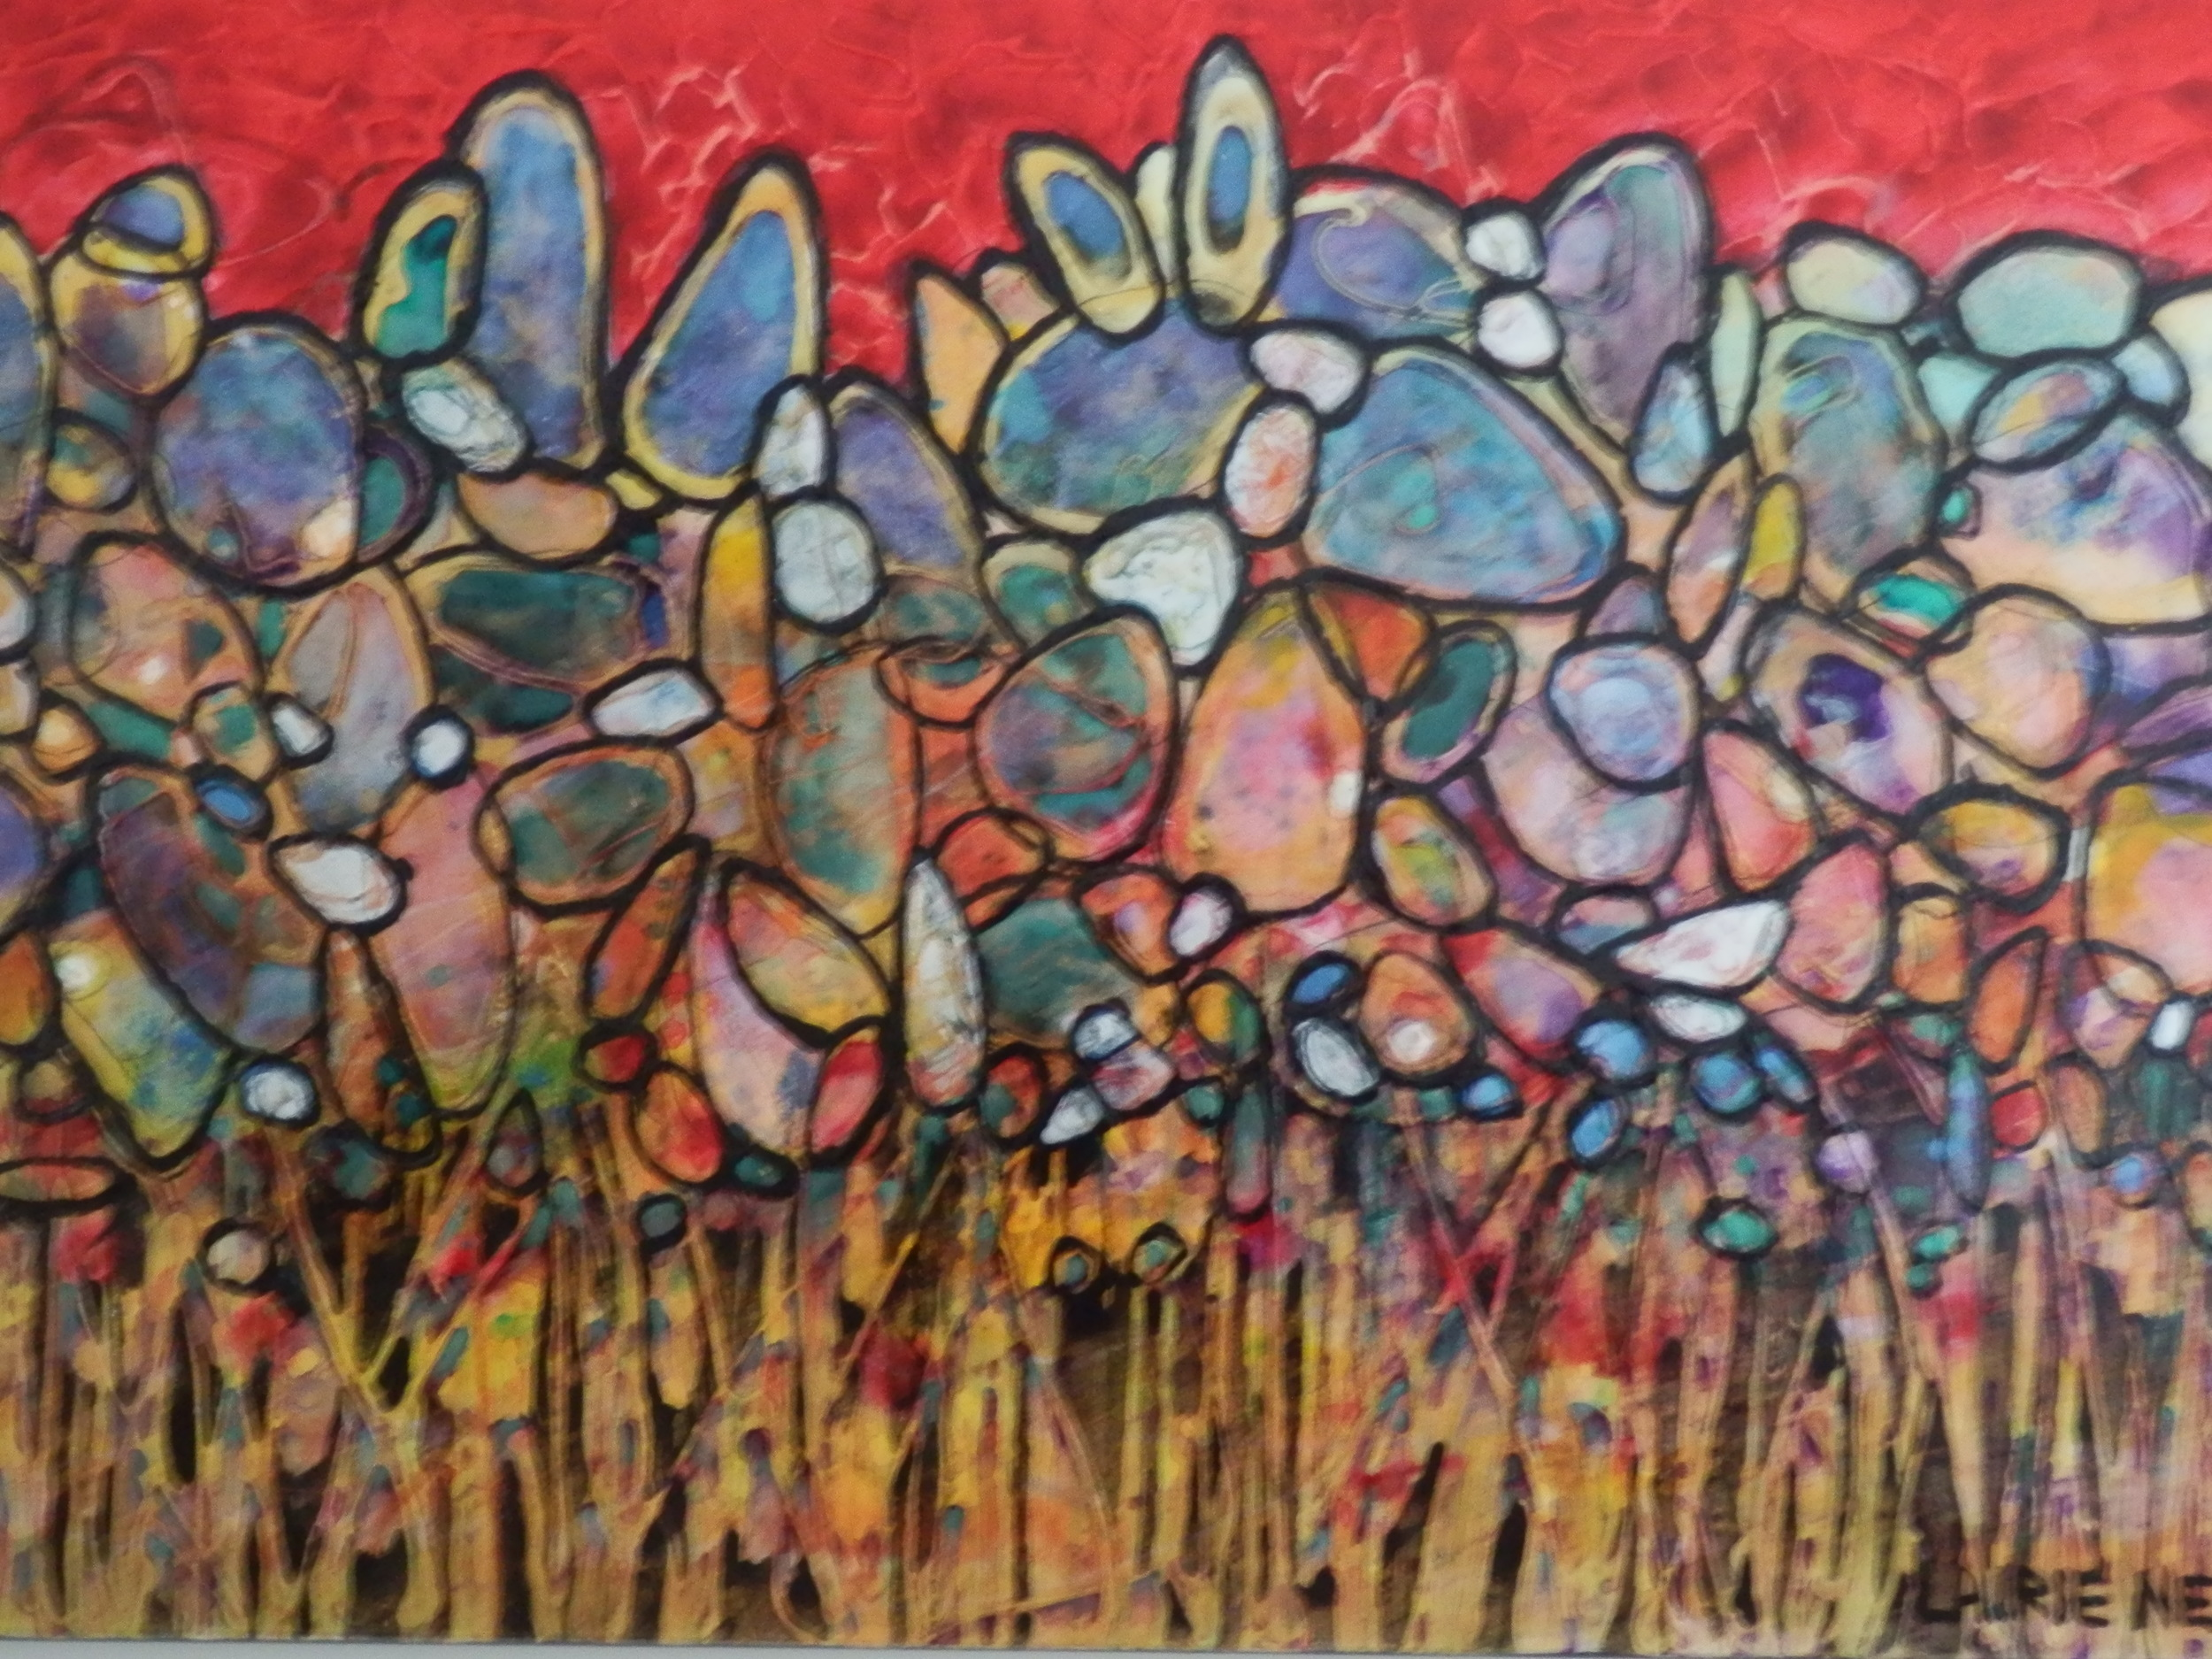 'Celebration' painting by Laurie Near